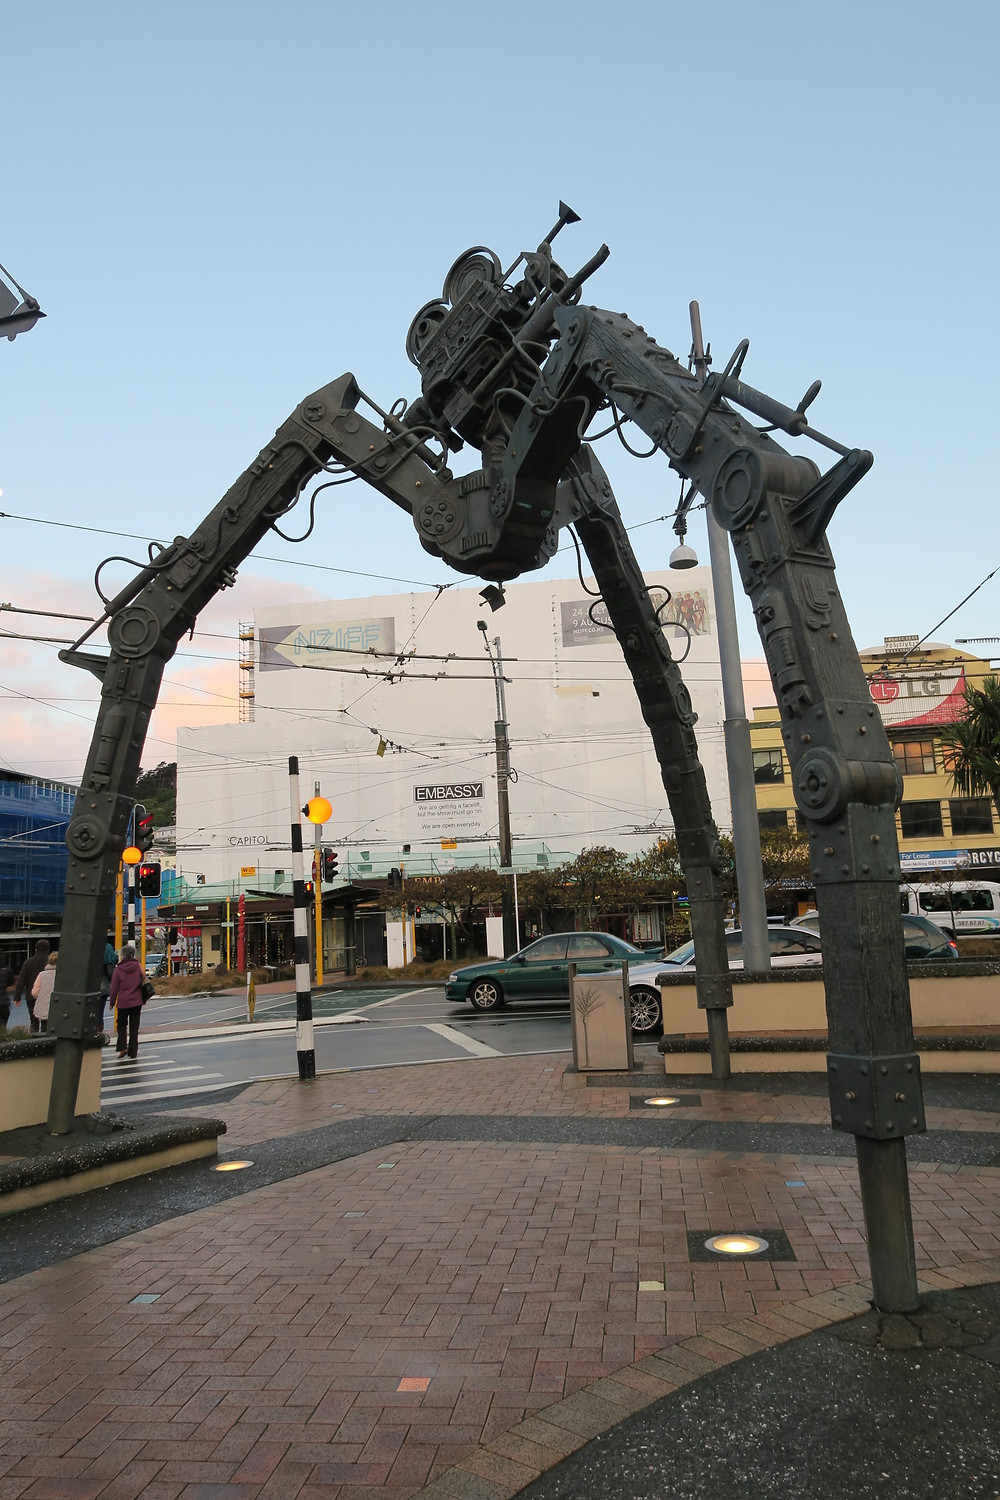 The Tripod  Weta Workshop was invited to create a monumental public art sculpture to celebrate the Wellington screen industry. The Tripod is situated opposite the Embassy Theatre.